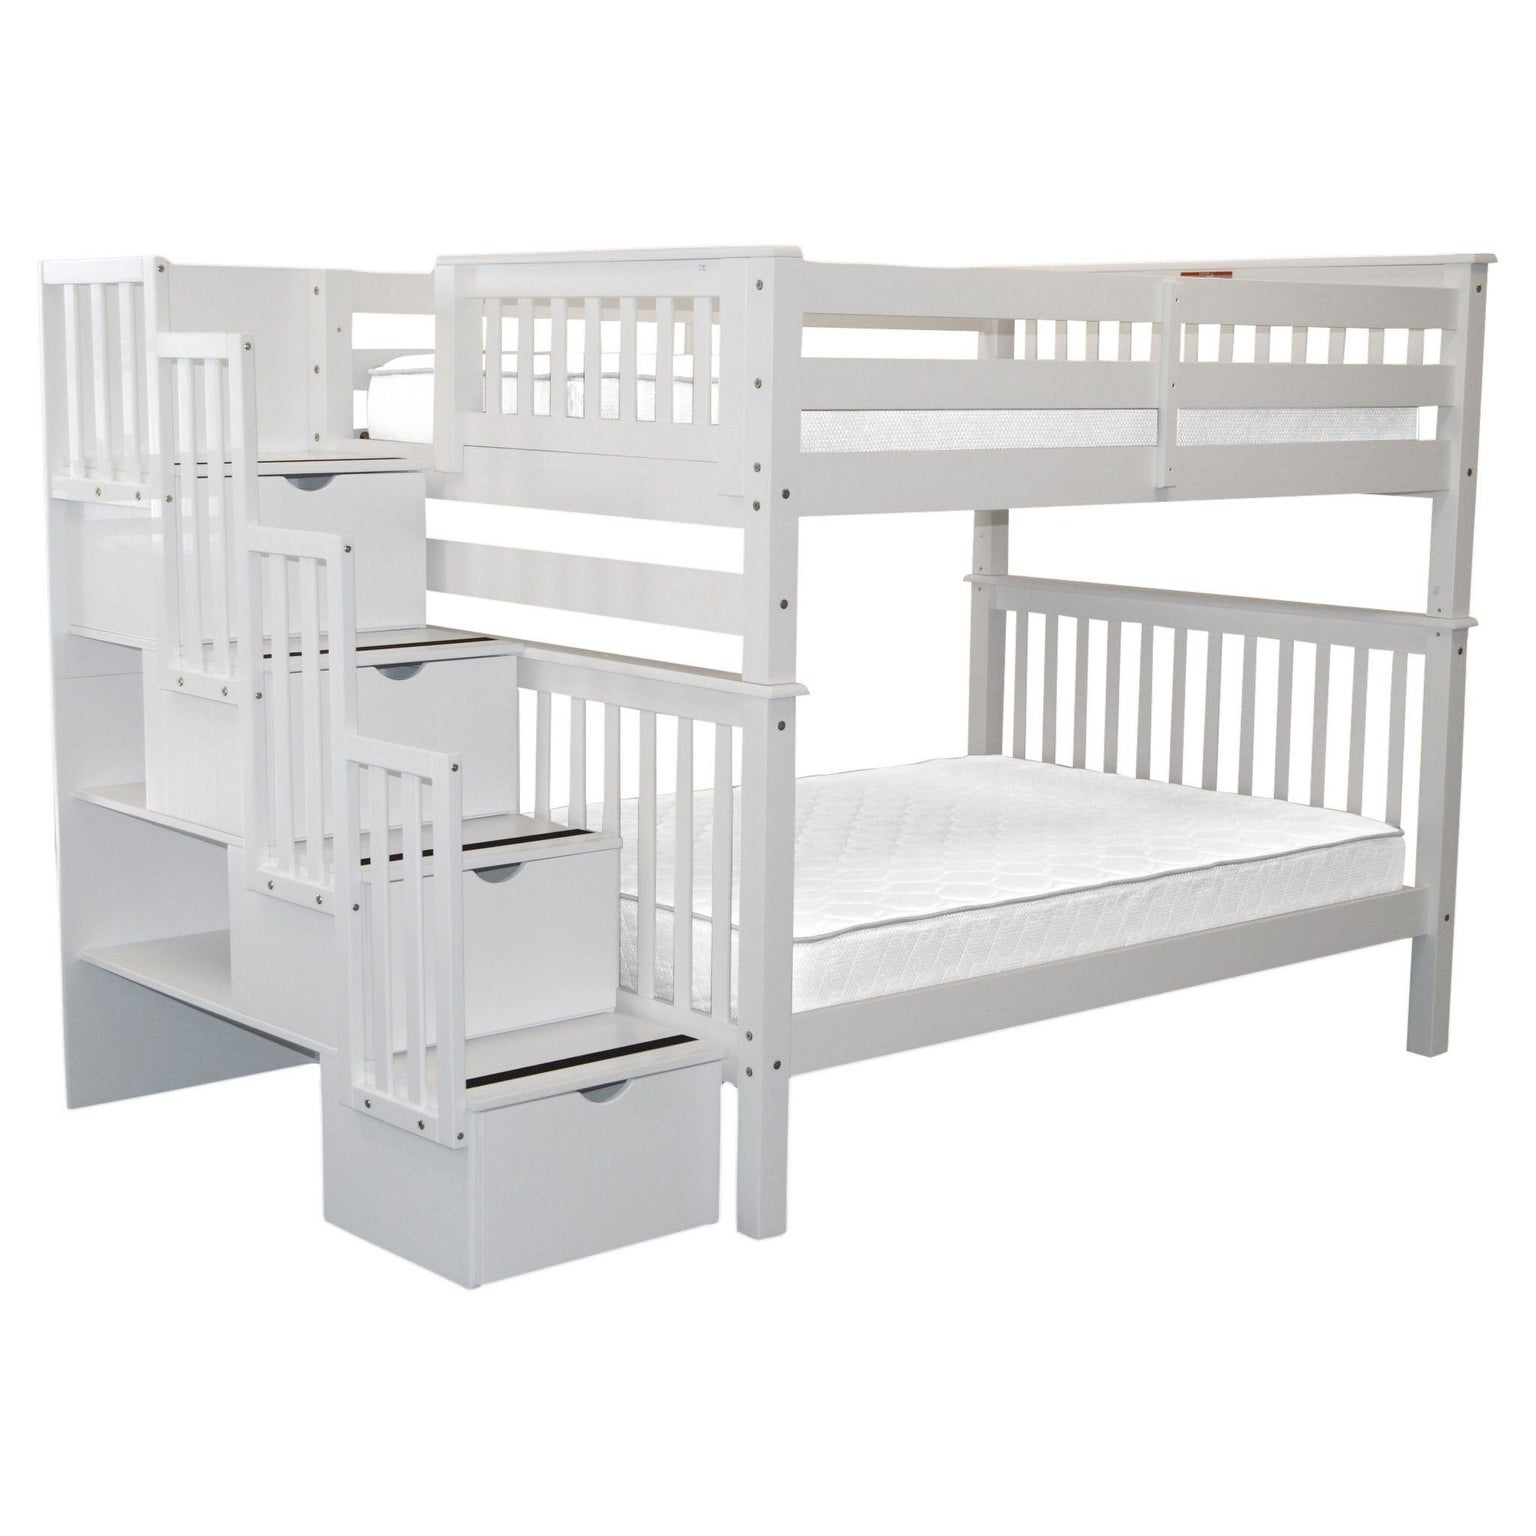 Picture of: Bedz King Stairway Bunk Beds Full Over Full With 4 Drawers In The Steps White Overstock 22669718